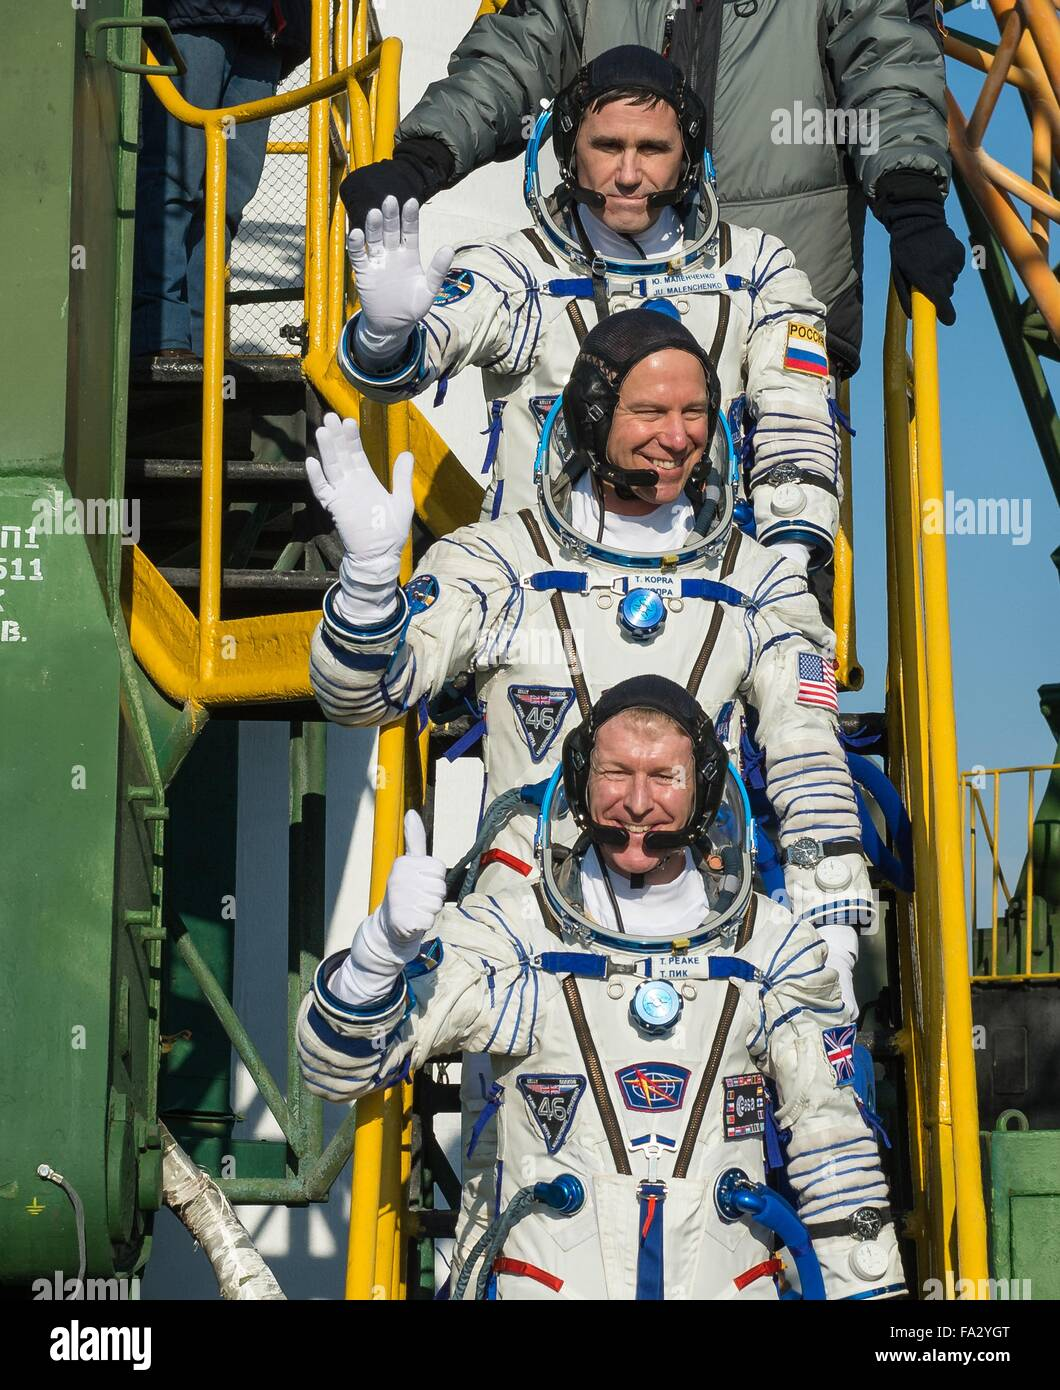 International Space Station Expedition 46 crew members in their Russian Sokol space suits wave as they board the - Stock Image